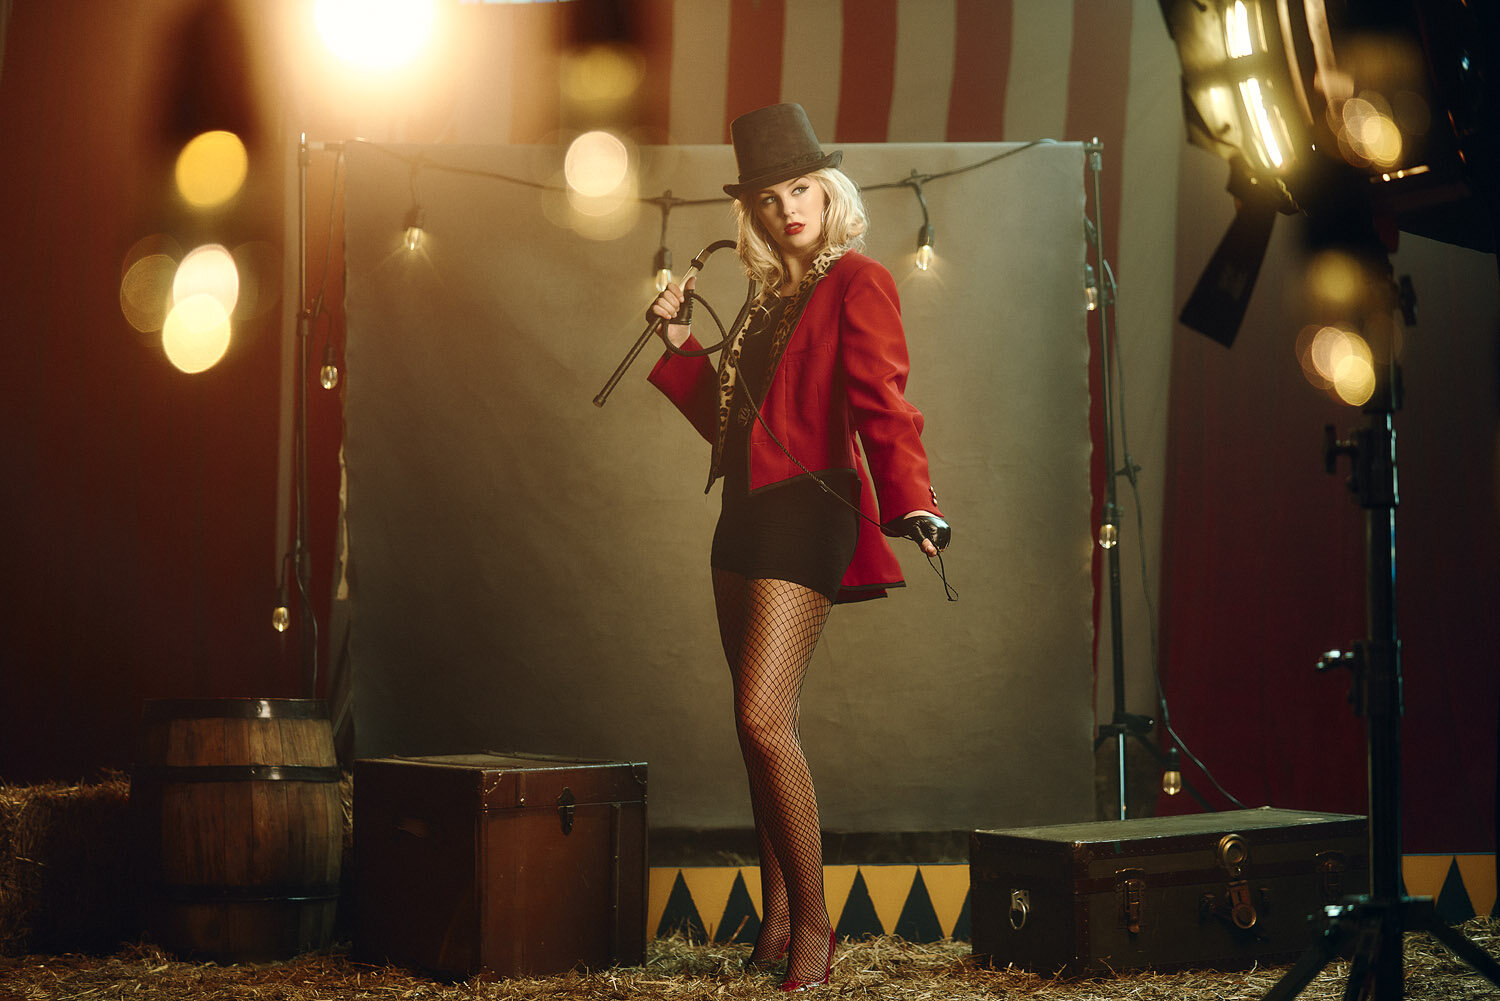 CIRCUS  An updated editorial fashion spin on the circus days of old.